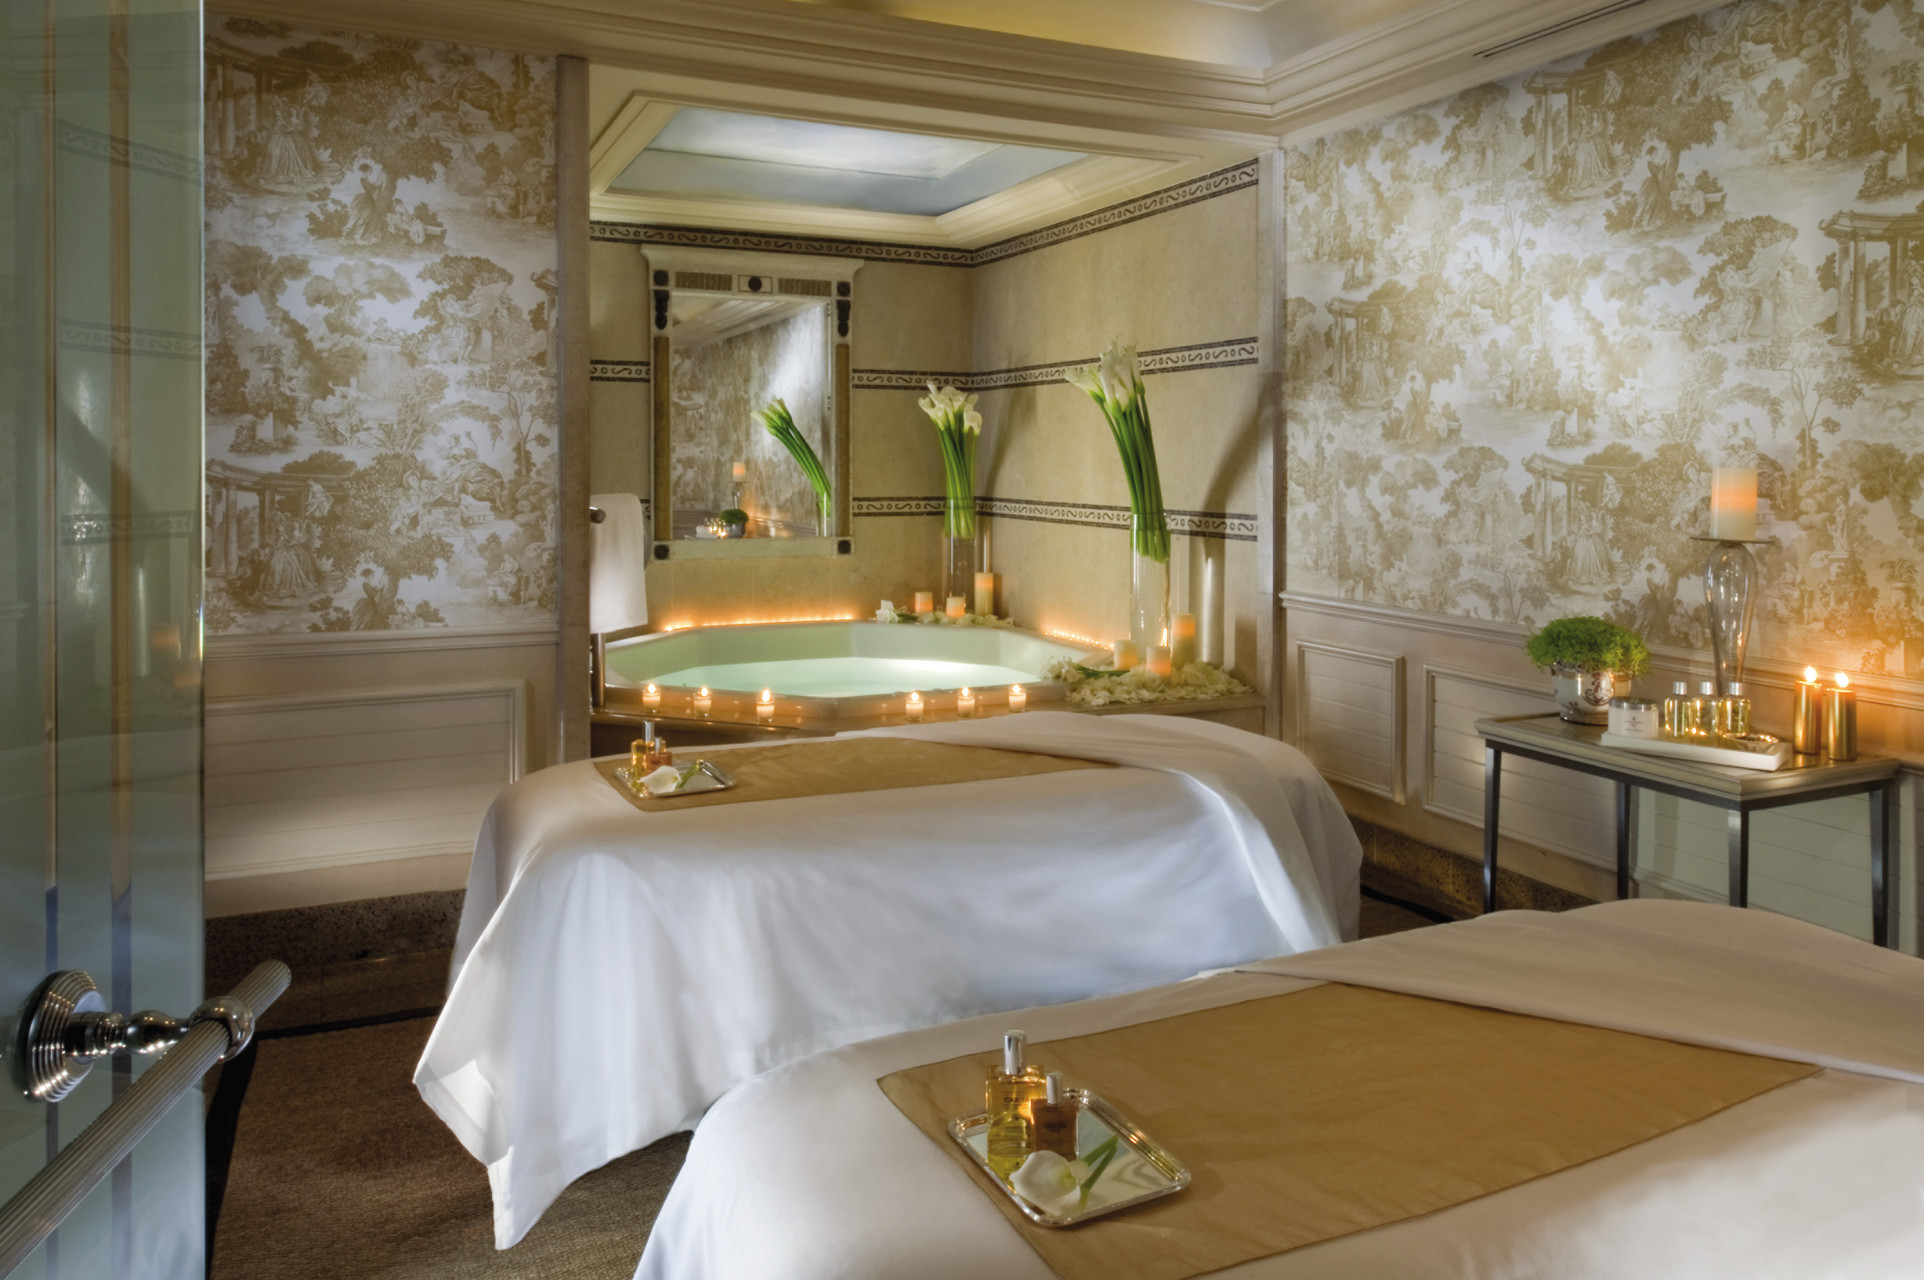 Salon De Massage De Luxe Paris Spa Going The Perfect Antidote To The Winter Blues